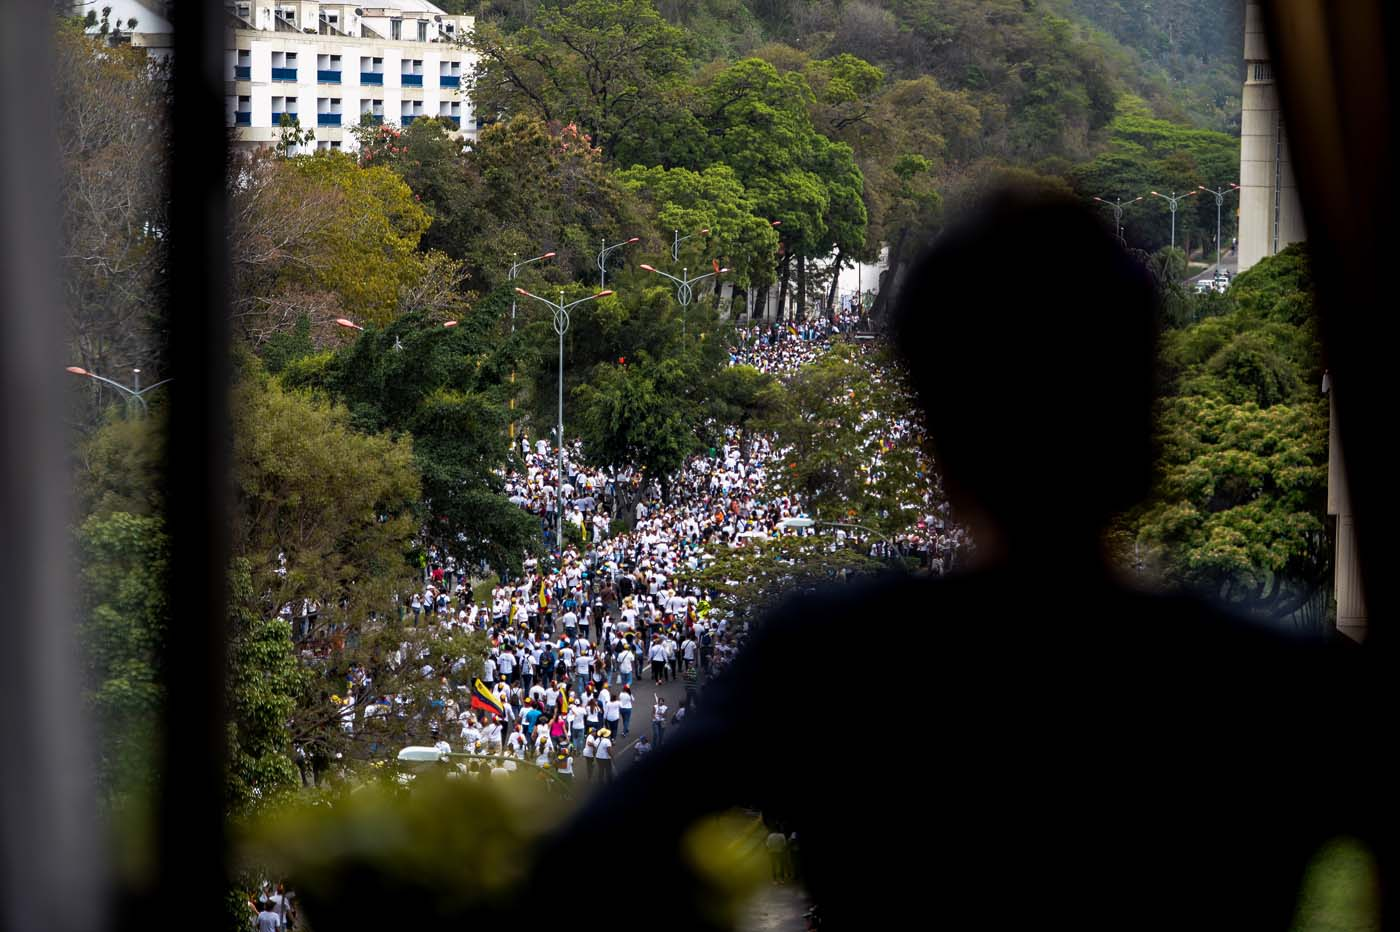 """Venezuelan opposition activists march in a quiet show of condemnation of the government of President NIcolas Maduro, in Caracas, on April 22, 2017. Venezuelans gathered Saturday for """"silent marches"""" against President Nicolas Maduro, a test of his government's tolerance for peaceful protests after three weeks of violent unrest that has left 20 people dead. / AFP PHOTO / FEDERICO PARRA"""